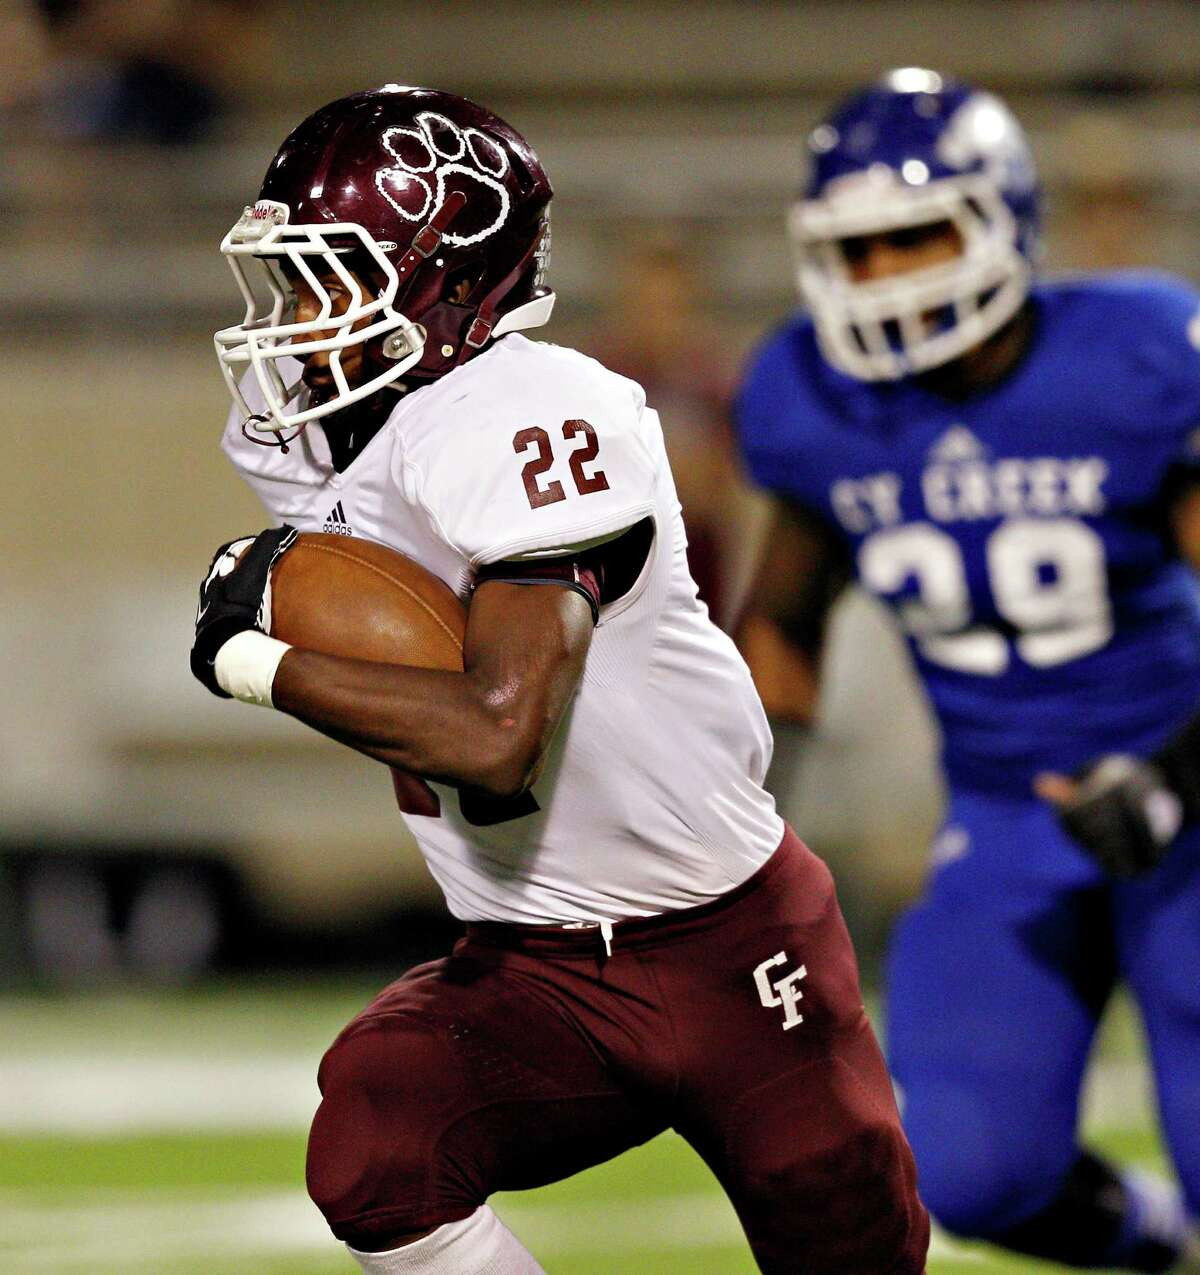 """Cy-Fair's Jacorey Aleem draws raves from coach Ed Pustejovsky, who says the running back is """"a tremendous athlete, and he can do just about whatever."""""""